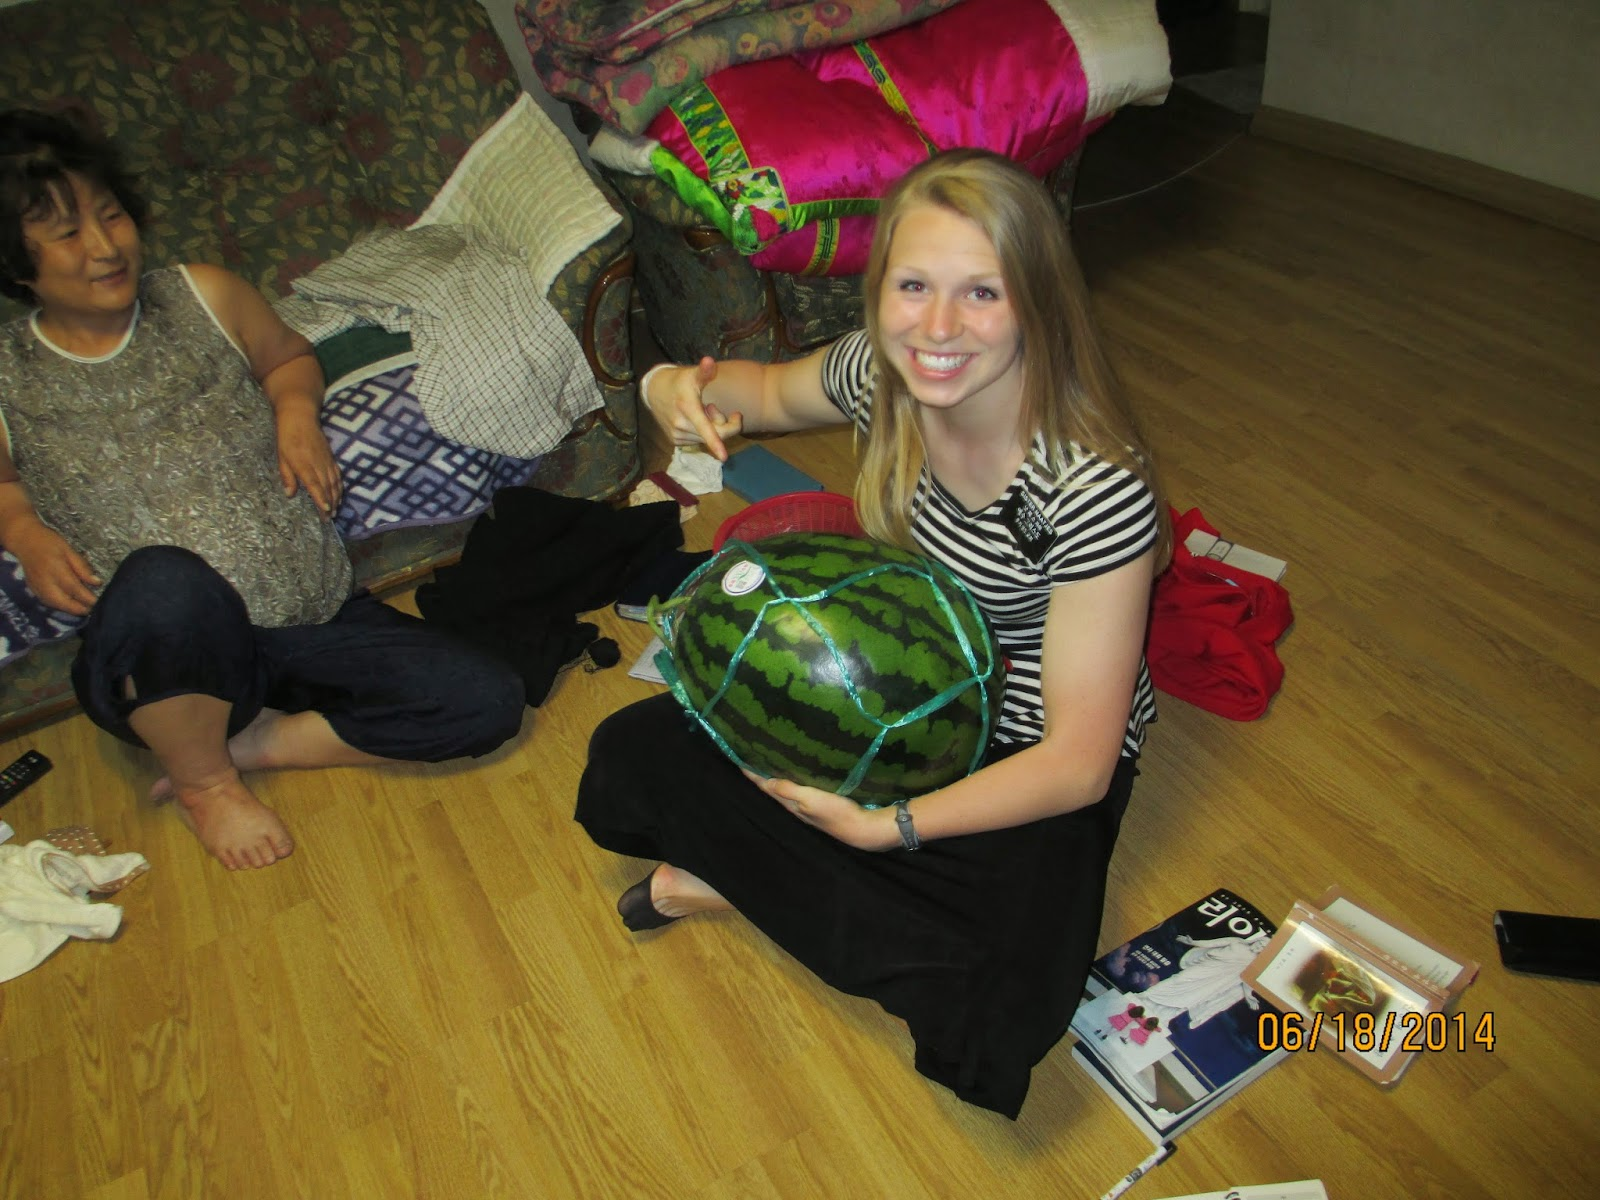 A REALLY big watermelon that we ate with a recent convert in our ward, 서향주 (so-hyeong-ju).